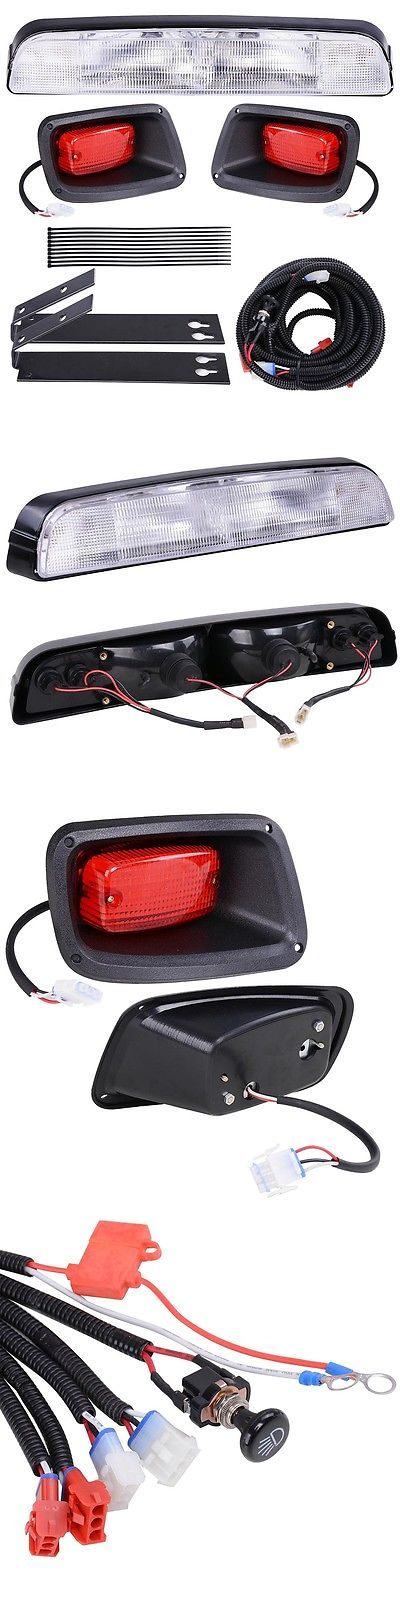 Push-Pull Golf Carts 75207: Ezgo Txt 1994 And Up Golf Cart Halogen Headlight Bar Light Kit W Led Taillights -> BUY IT NOW ONLY: $54.9 on eBay!